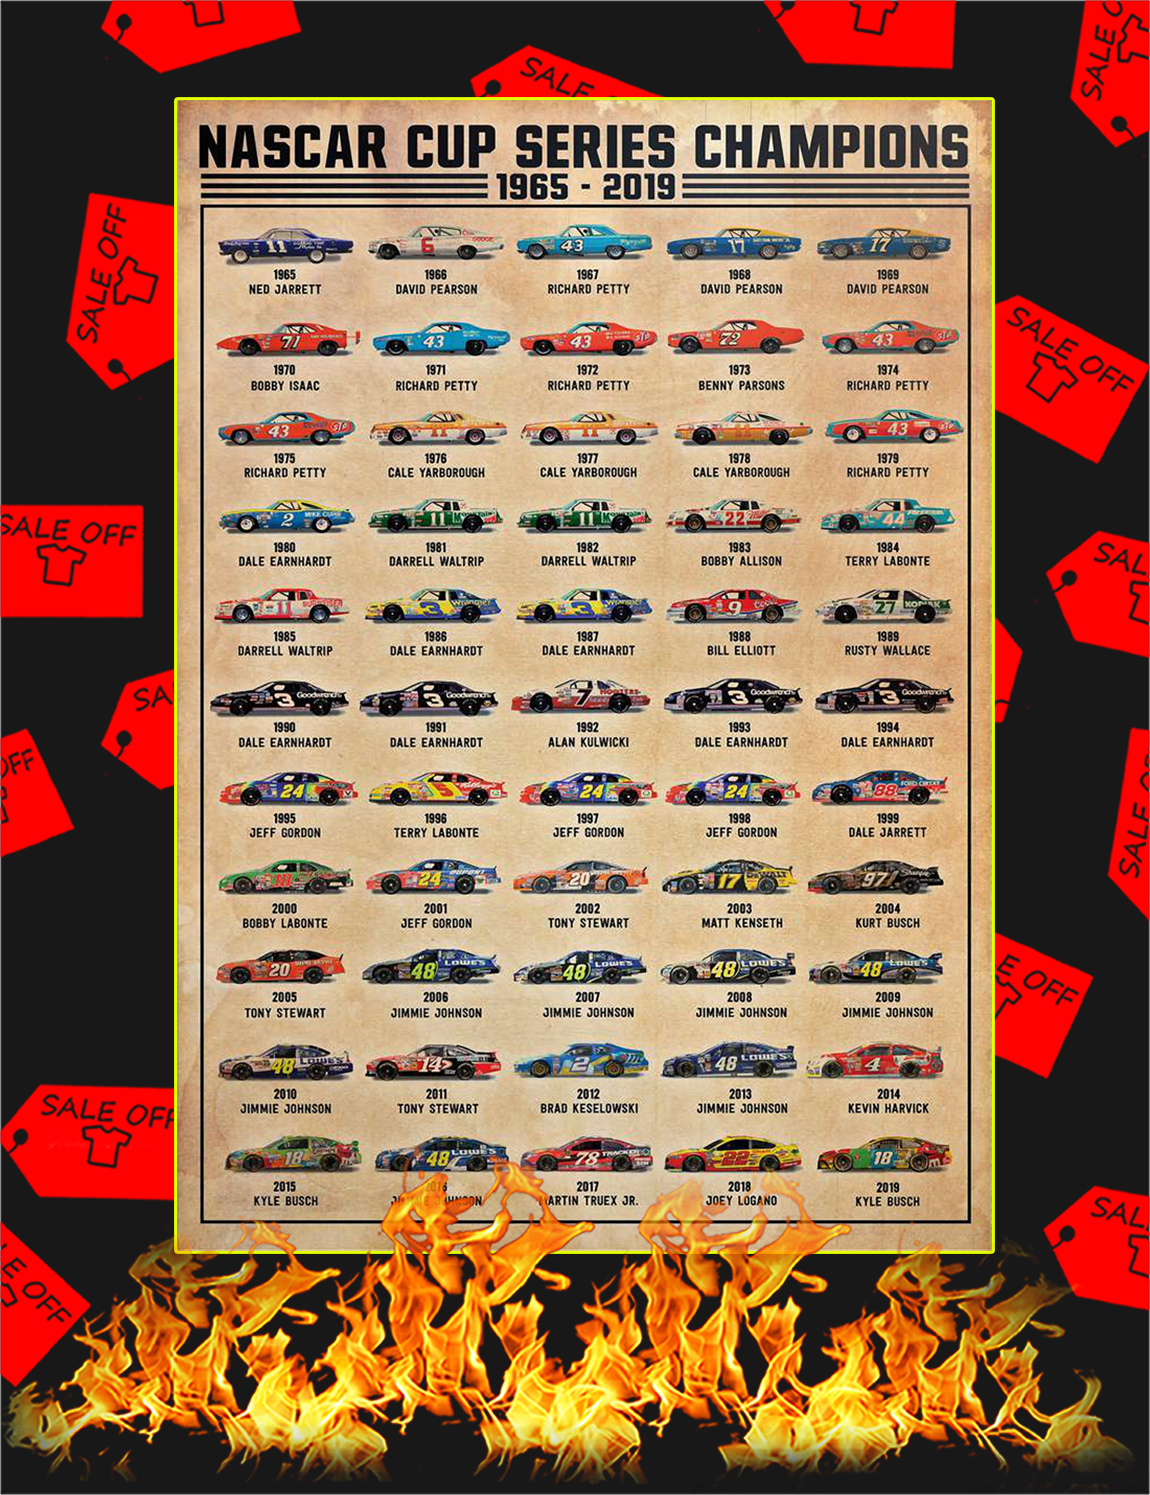 Nascar cup series champions 1965 2019 poster - A2